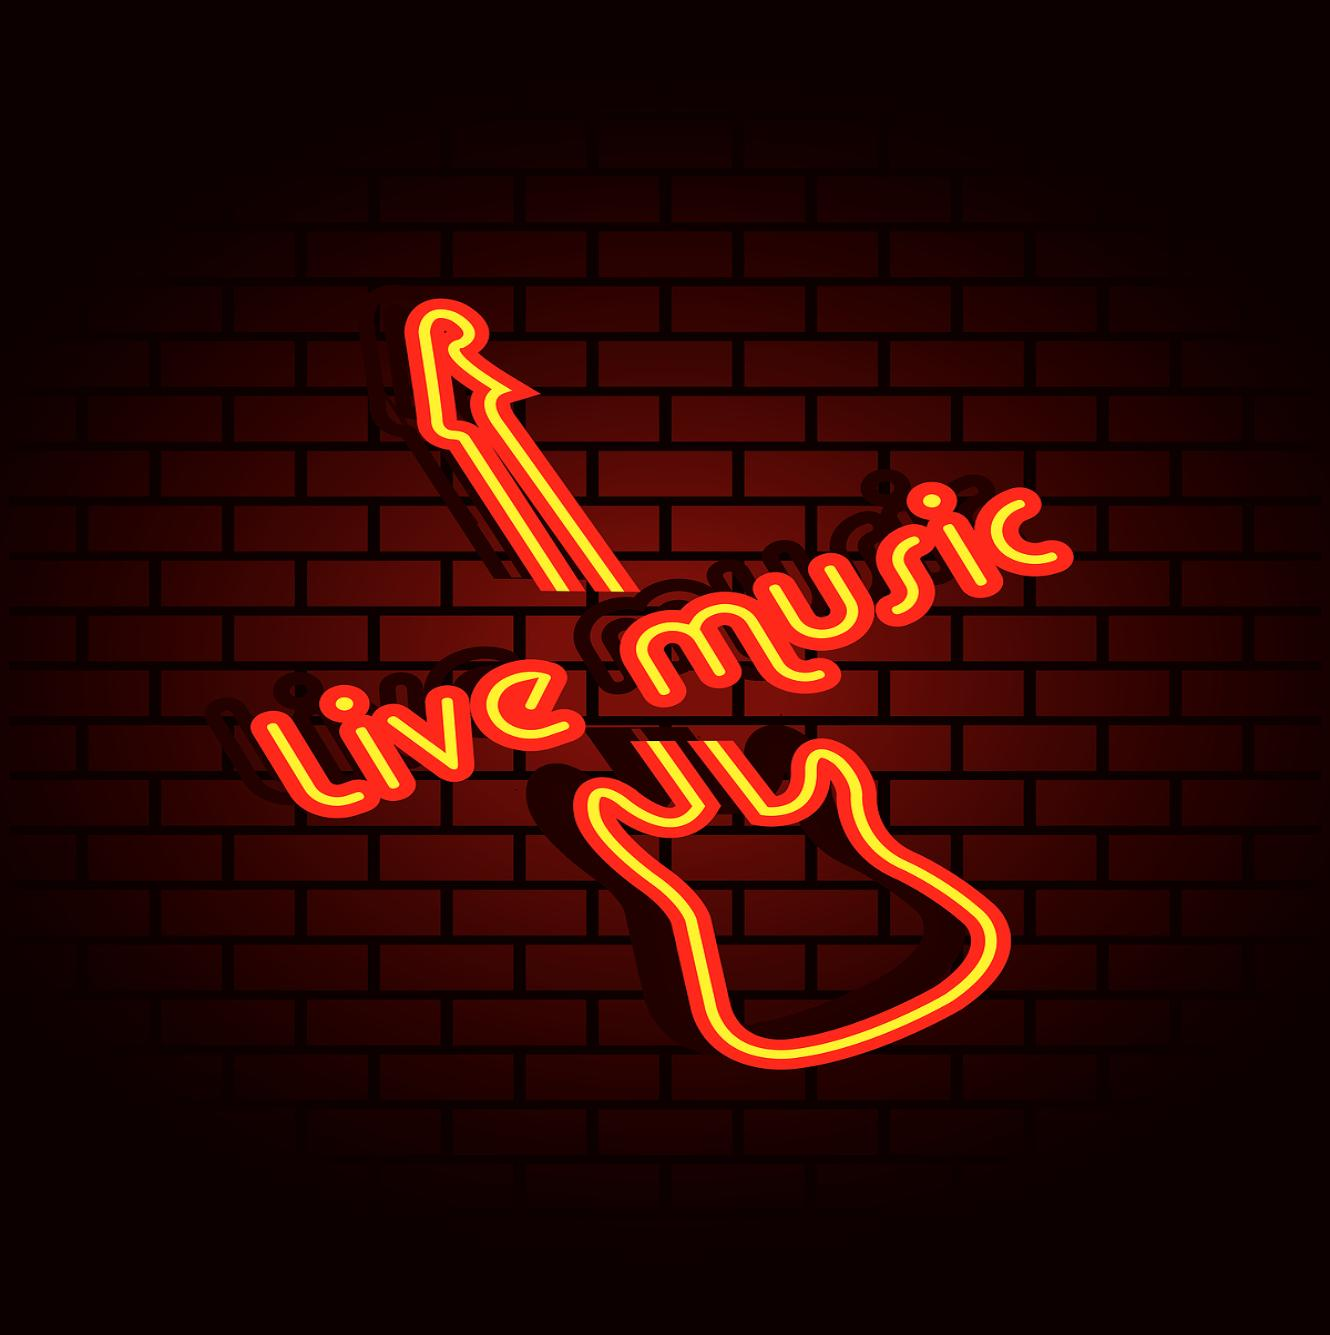 live-music-neon-sign12-1330x1335